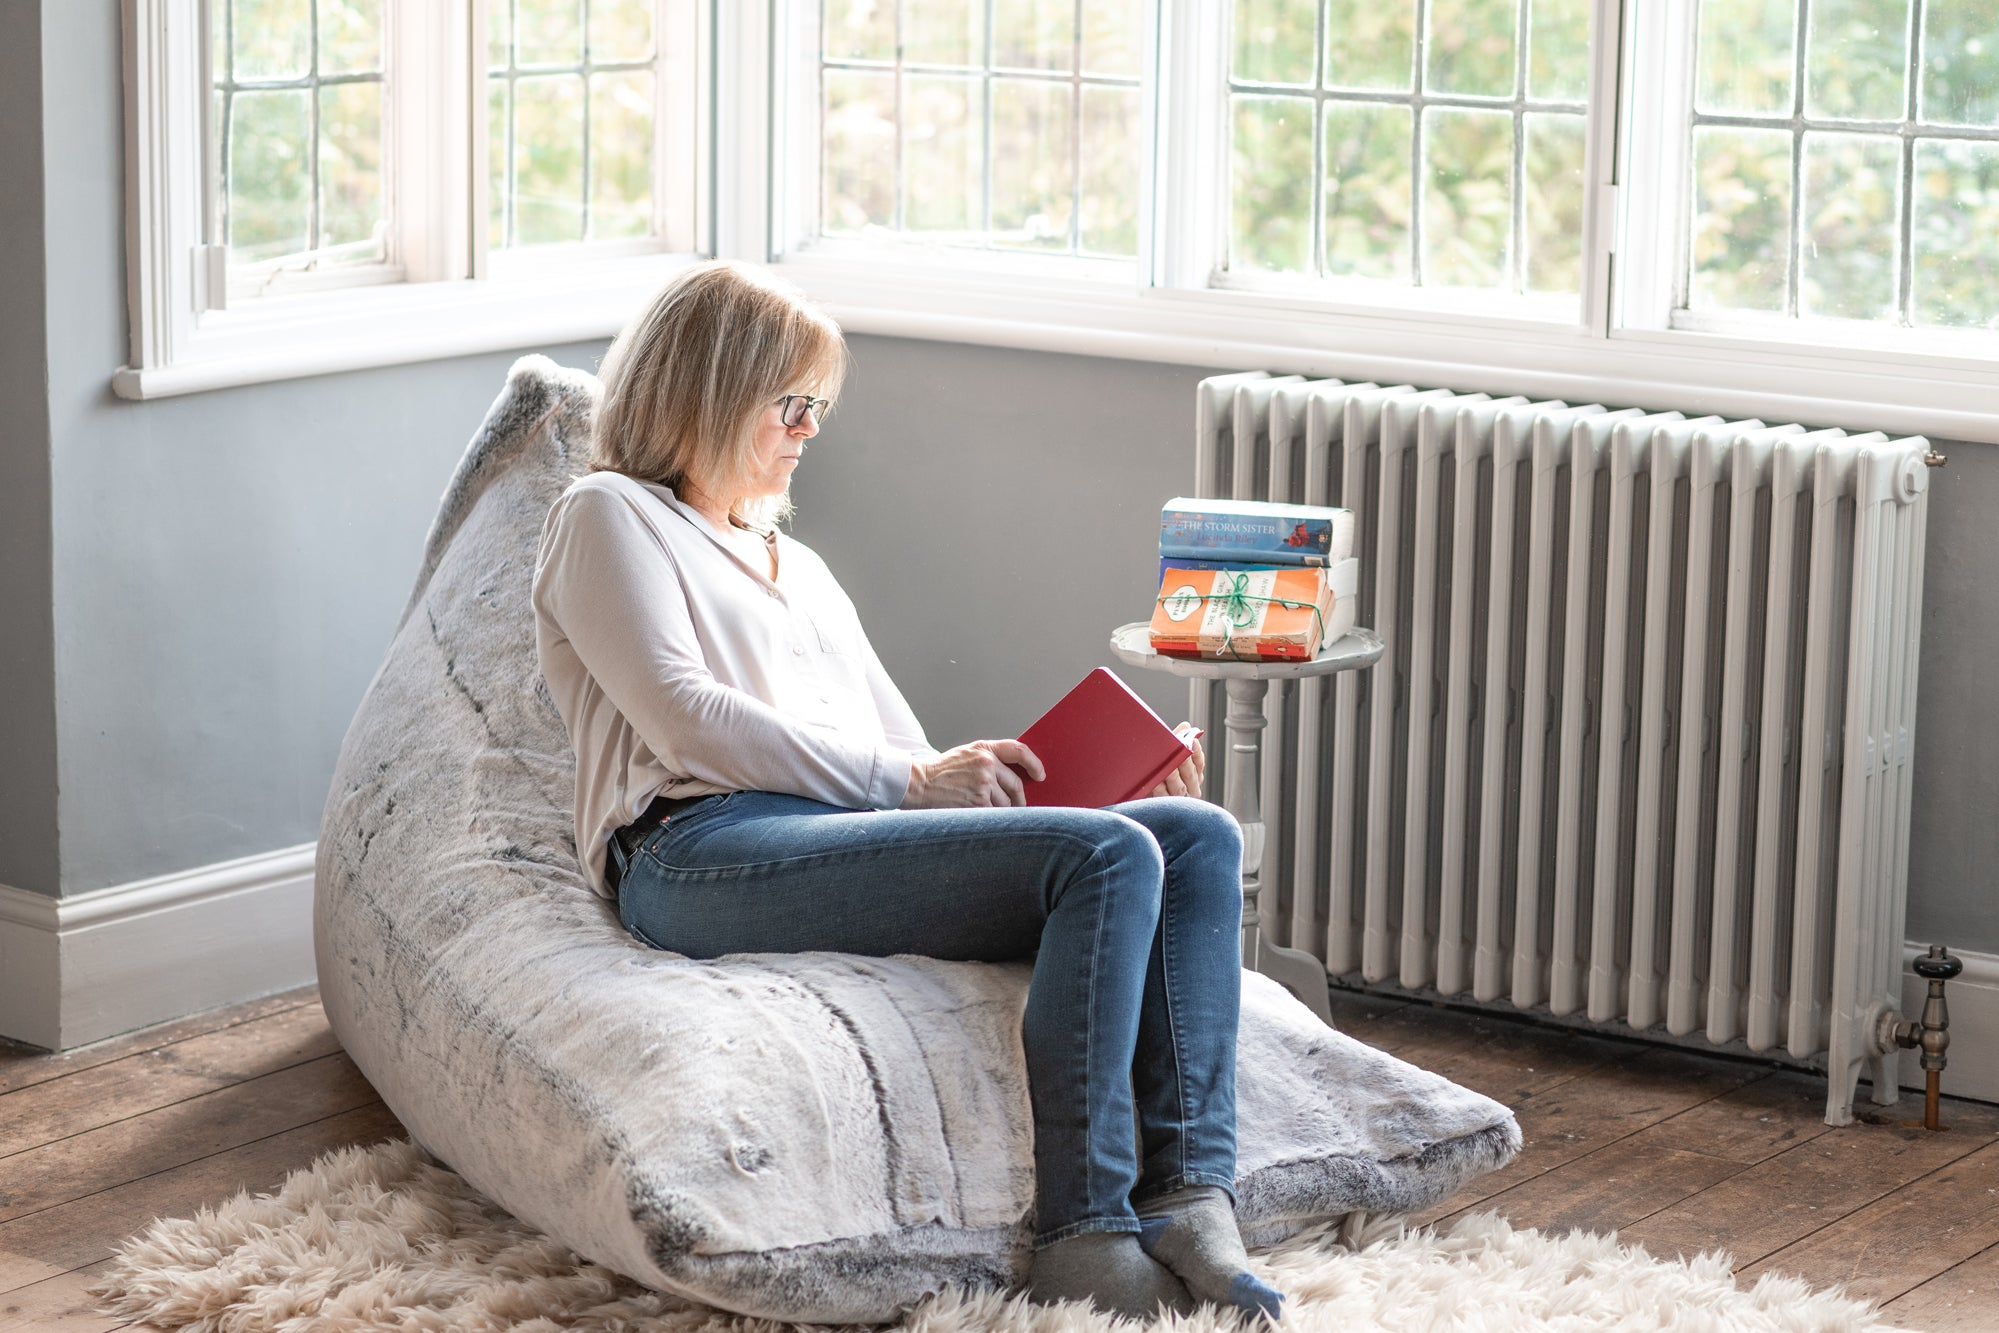 A snuggly faux fur bean bag in Alaska Fox is the cosiest reading corner for the woman snuggled into it with her pile of books